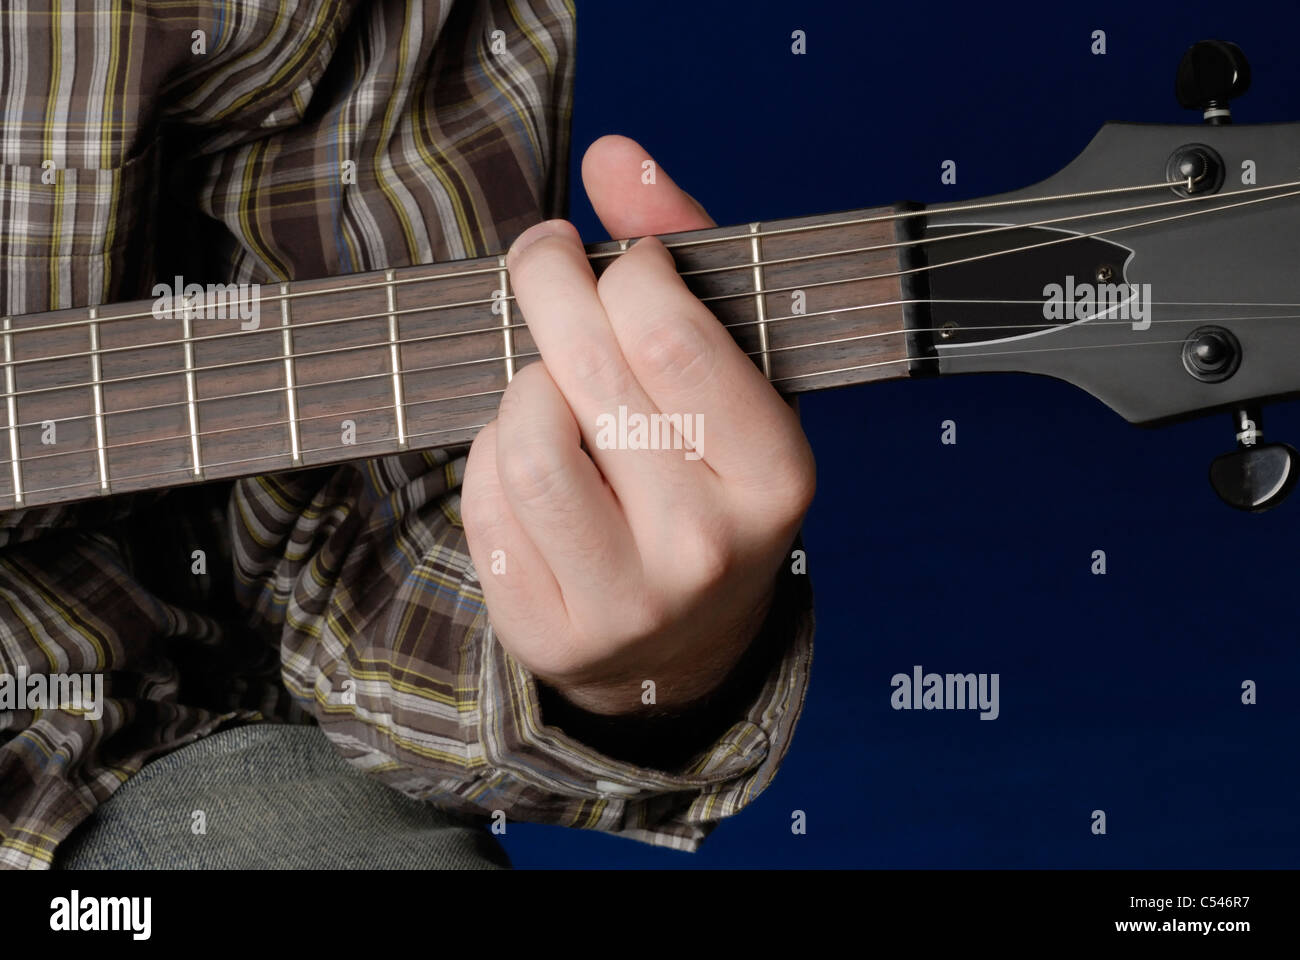 Mans Hand Demonstrating G Chord On Guitar Stock Photo 37587179 Alamy